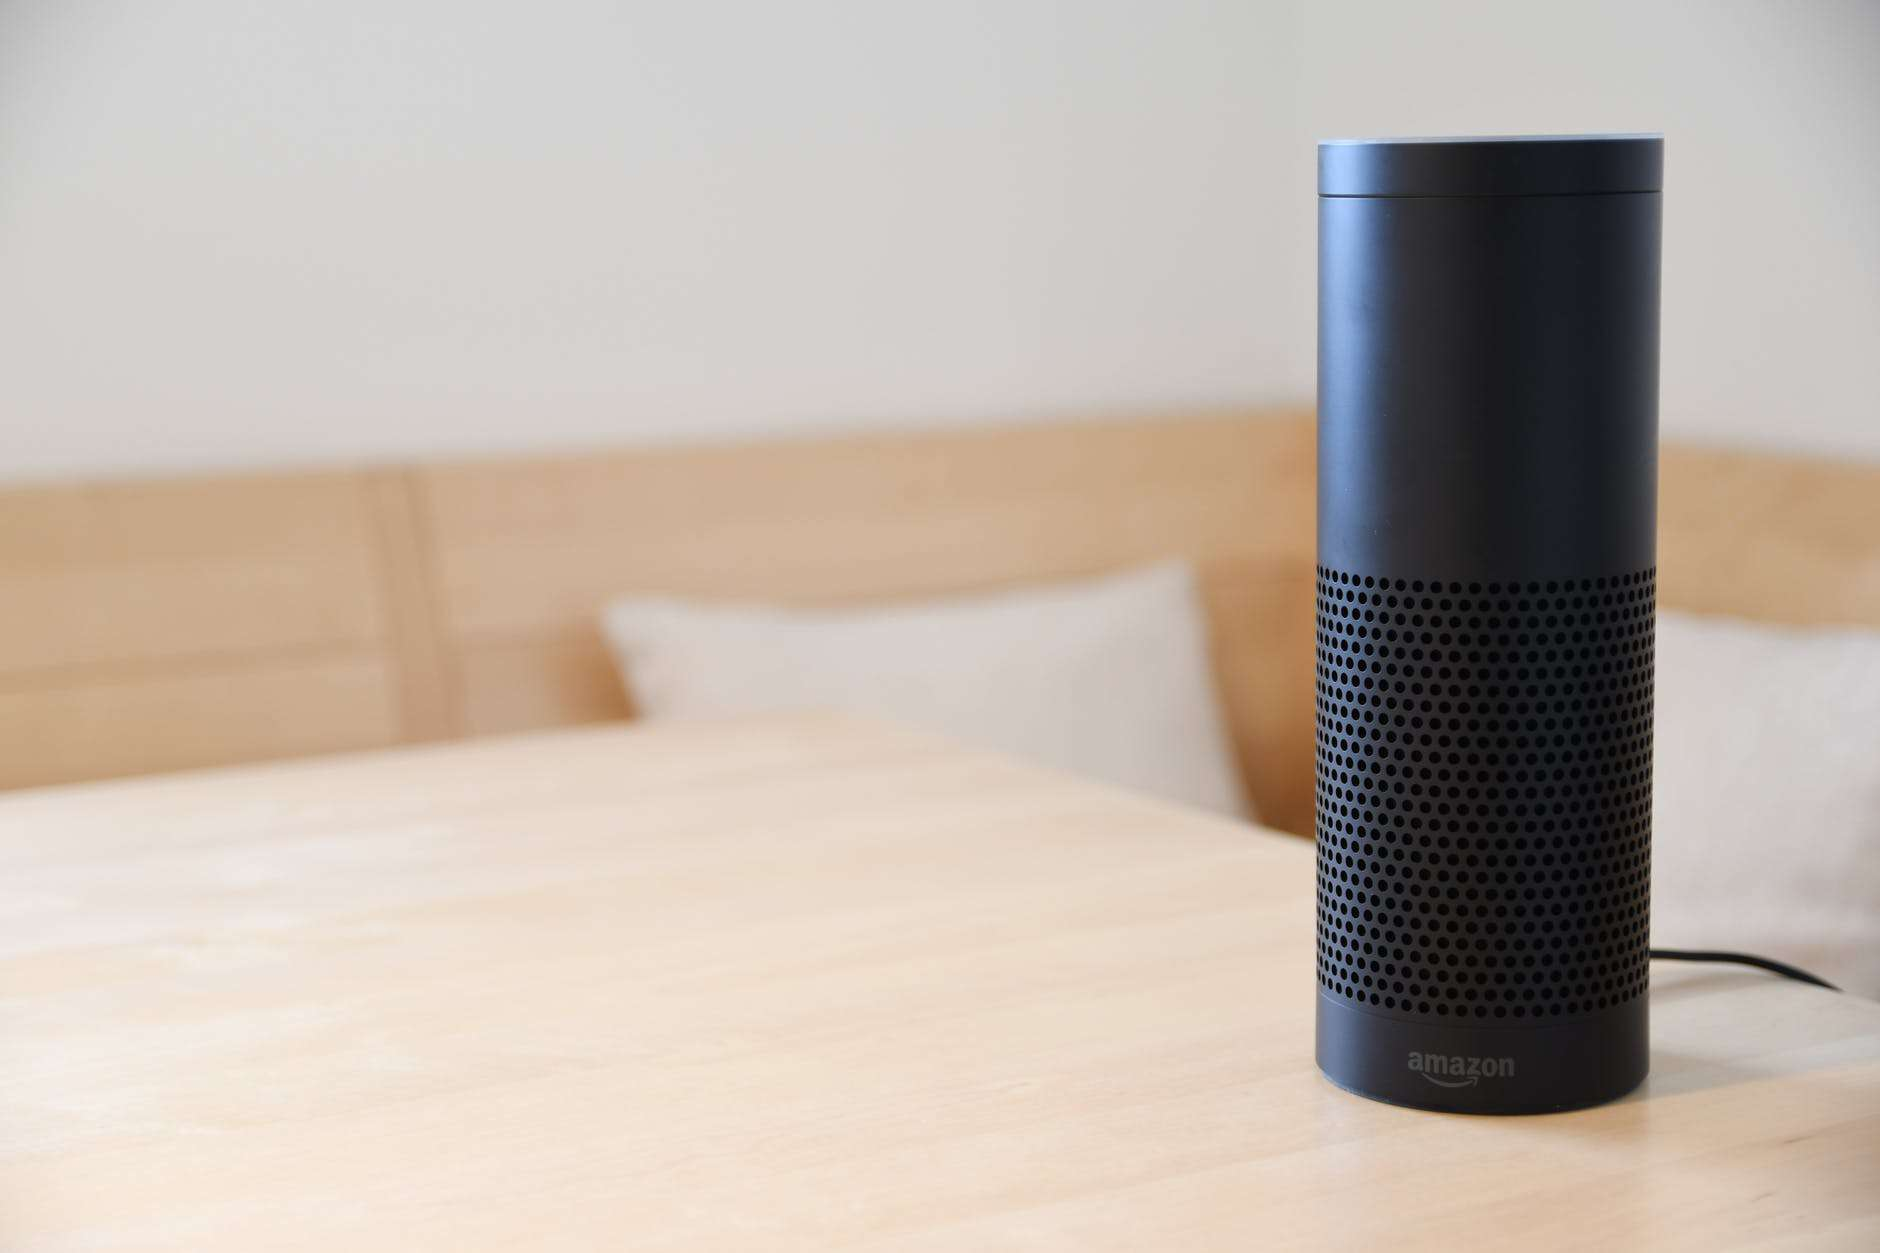 Top 10 Everyday Uses For Alexa